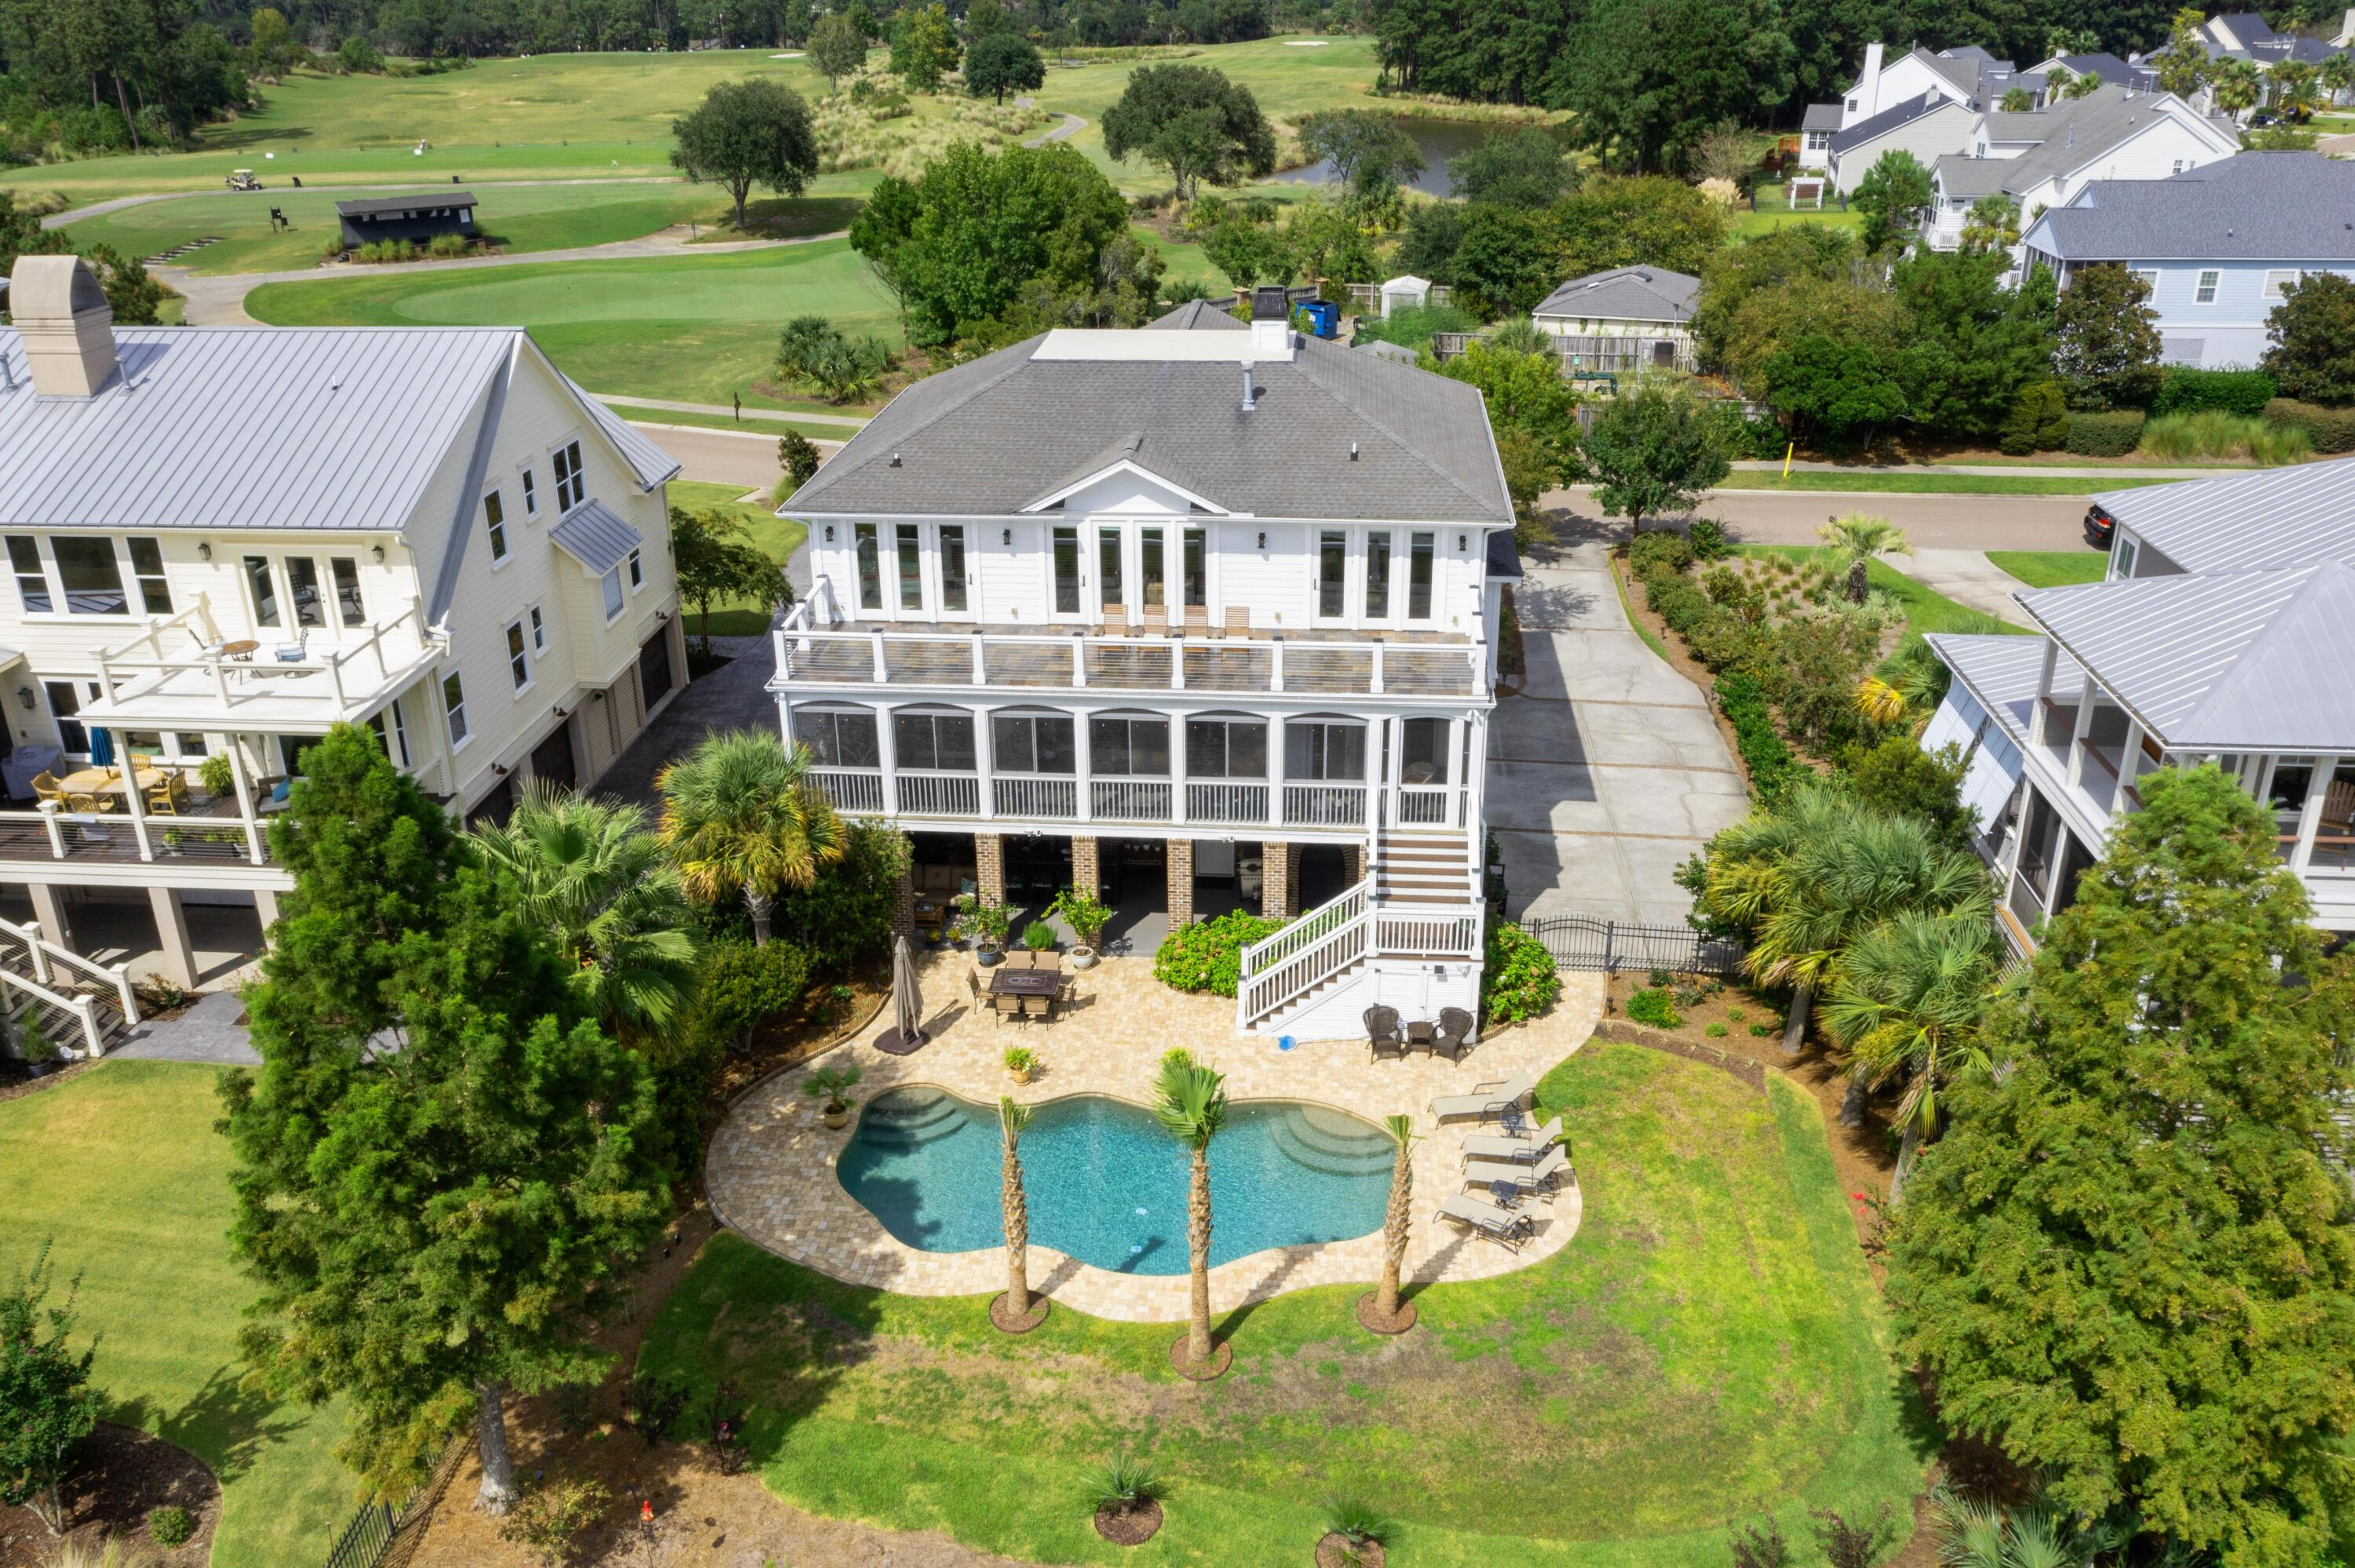 Rivertowne Country Club Homes For Sale - 1652 Rivertowne Country Club, Mount Pleasant, SC - 11